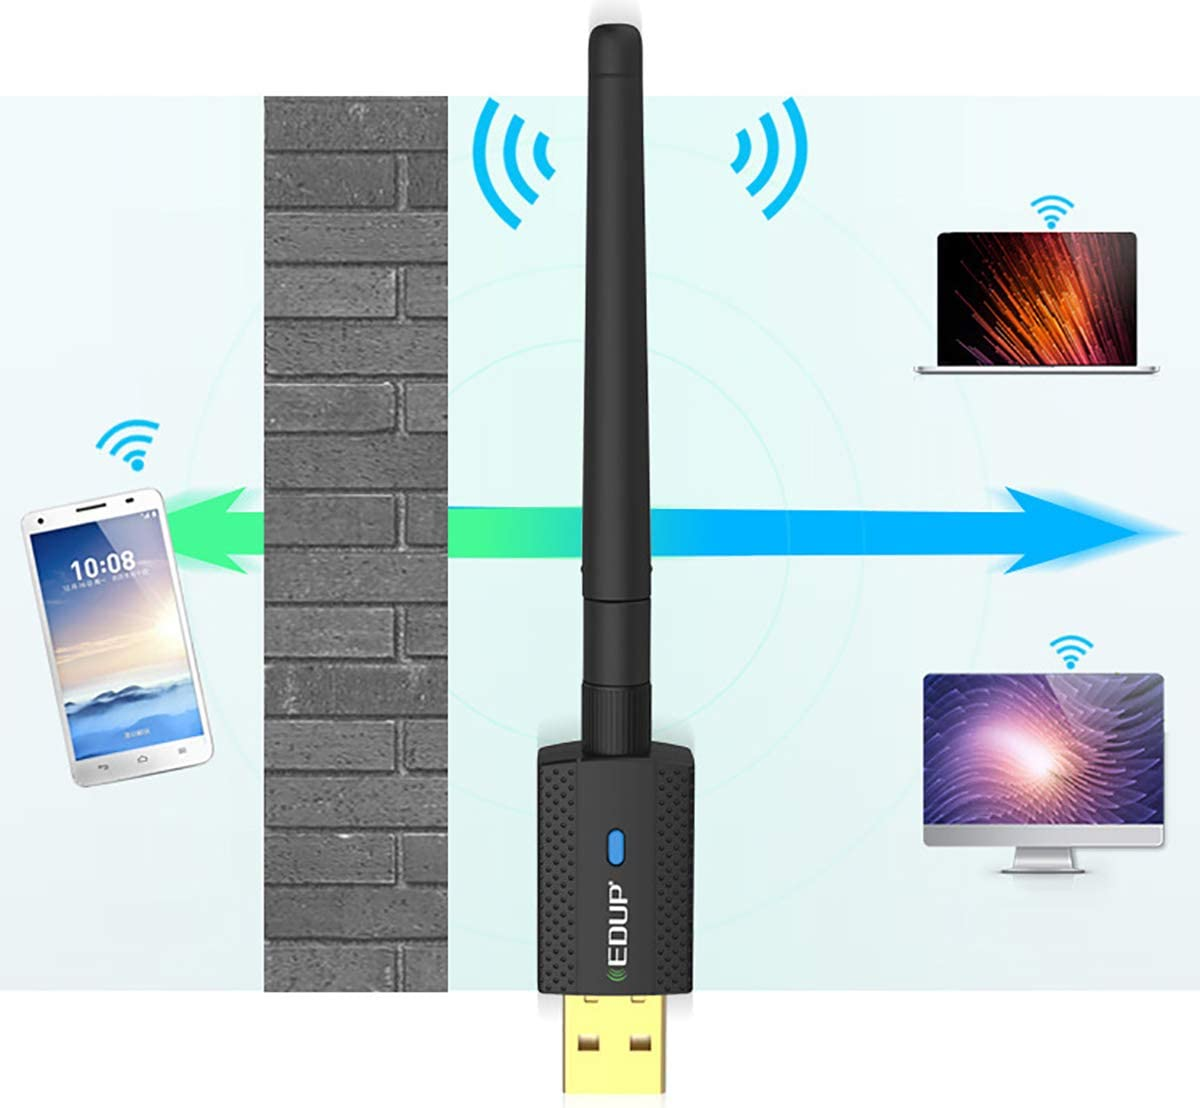 2.4-5.8GHz,Anti-Interference,Dual-Band,for Windows XP//7//8//8.1//10 Black ZUEN Network Card,600M Wireless Network Card Free Drive USB Bluetooth 4.2 WiFi Receiver